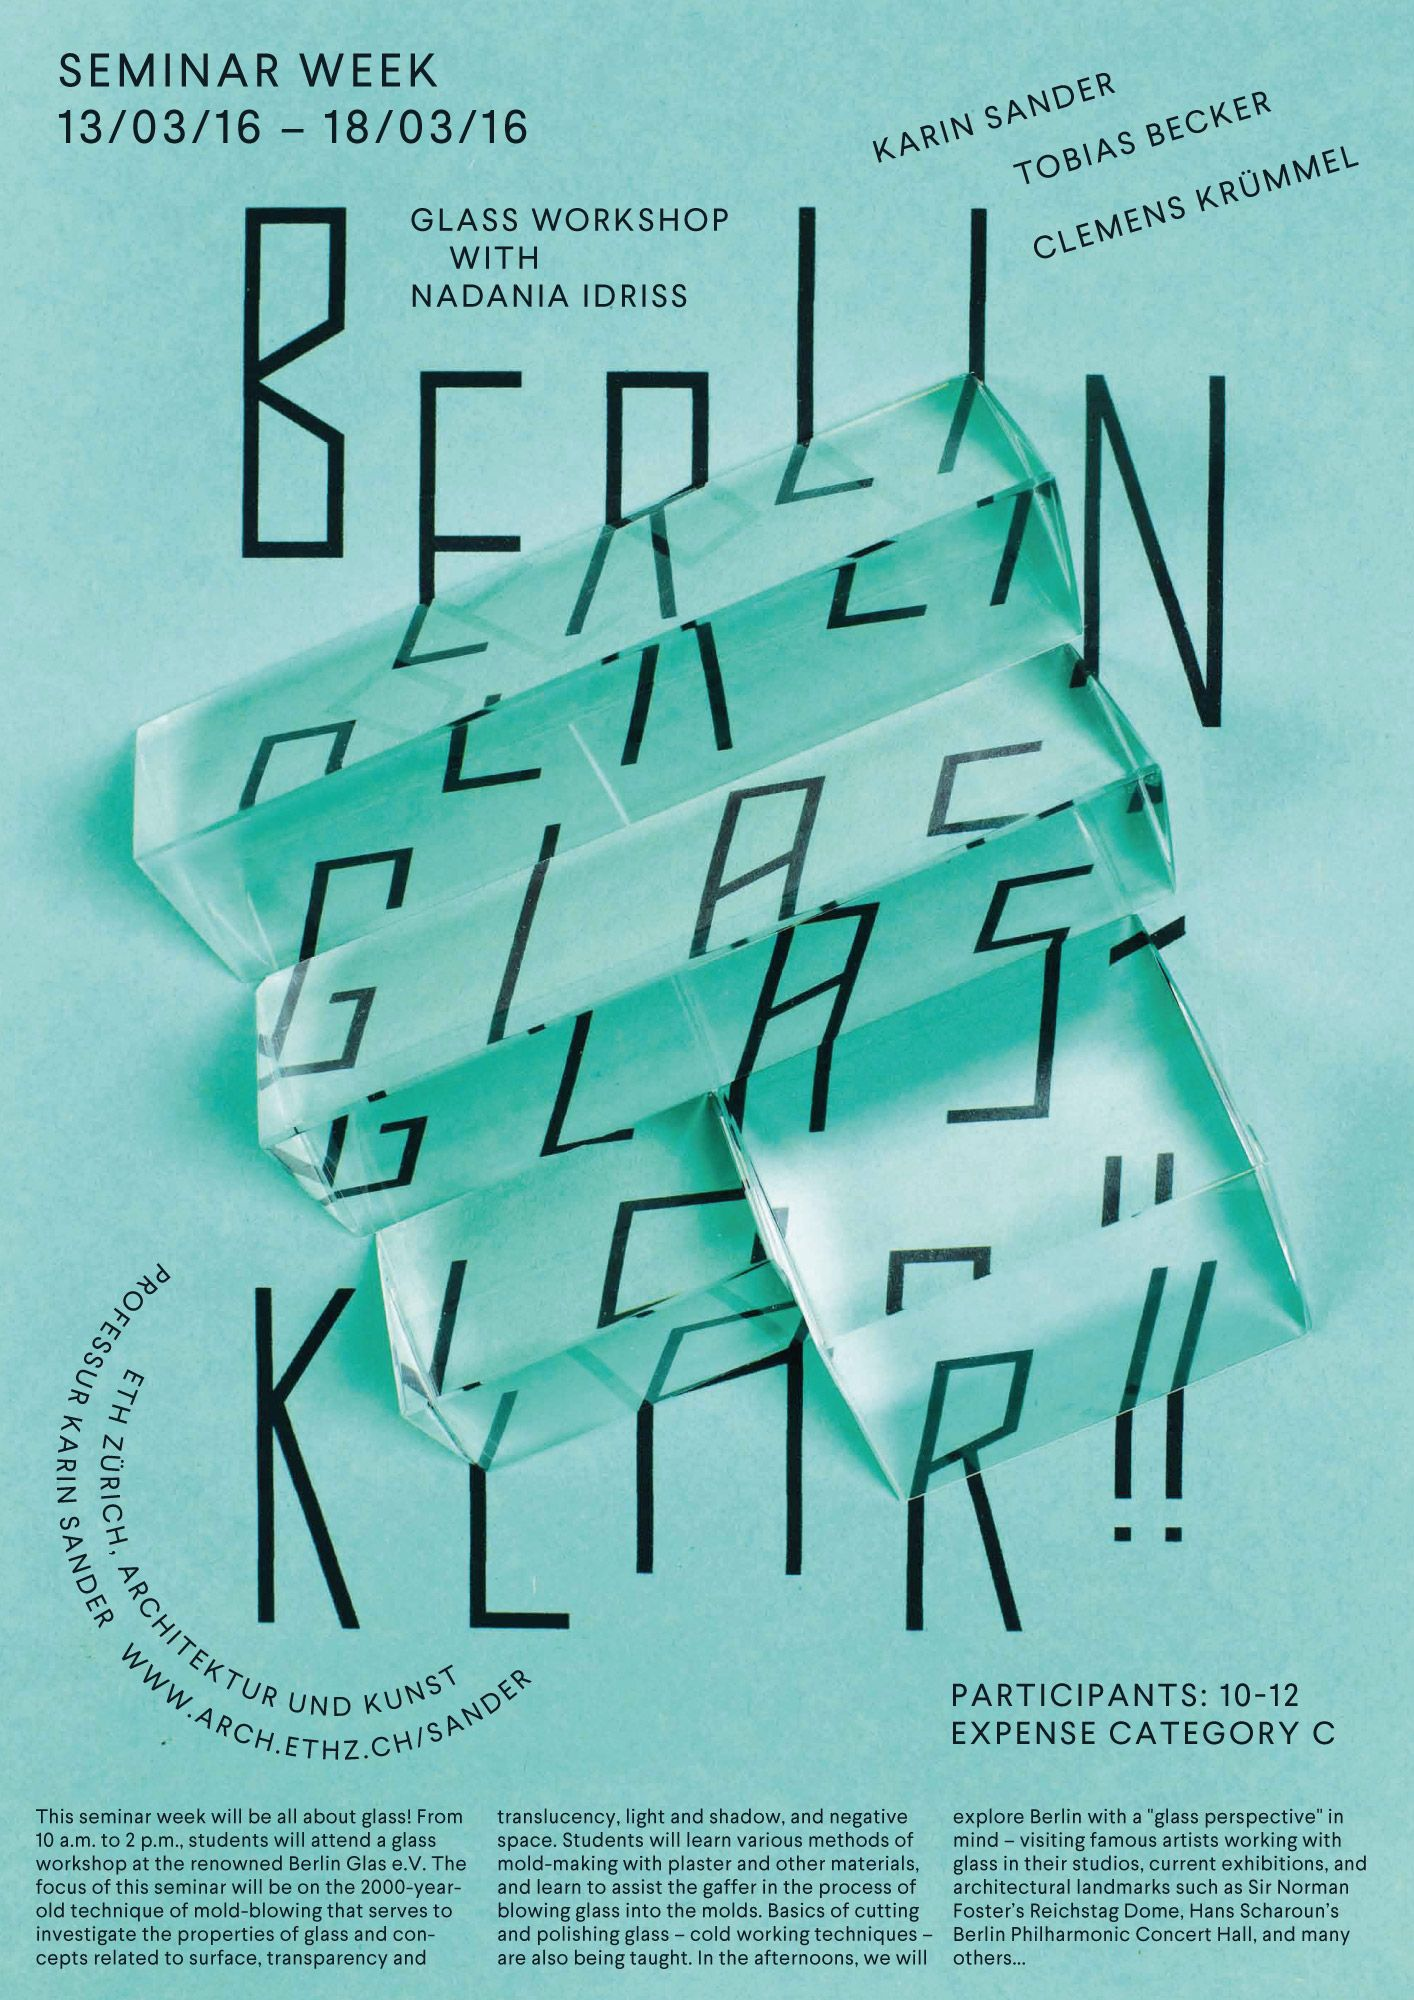 Pin by Mrztze on Posters in 2020 | Typography design ...